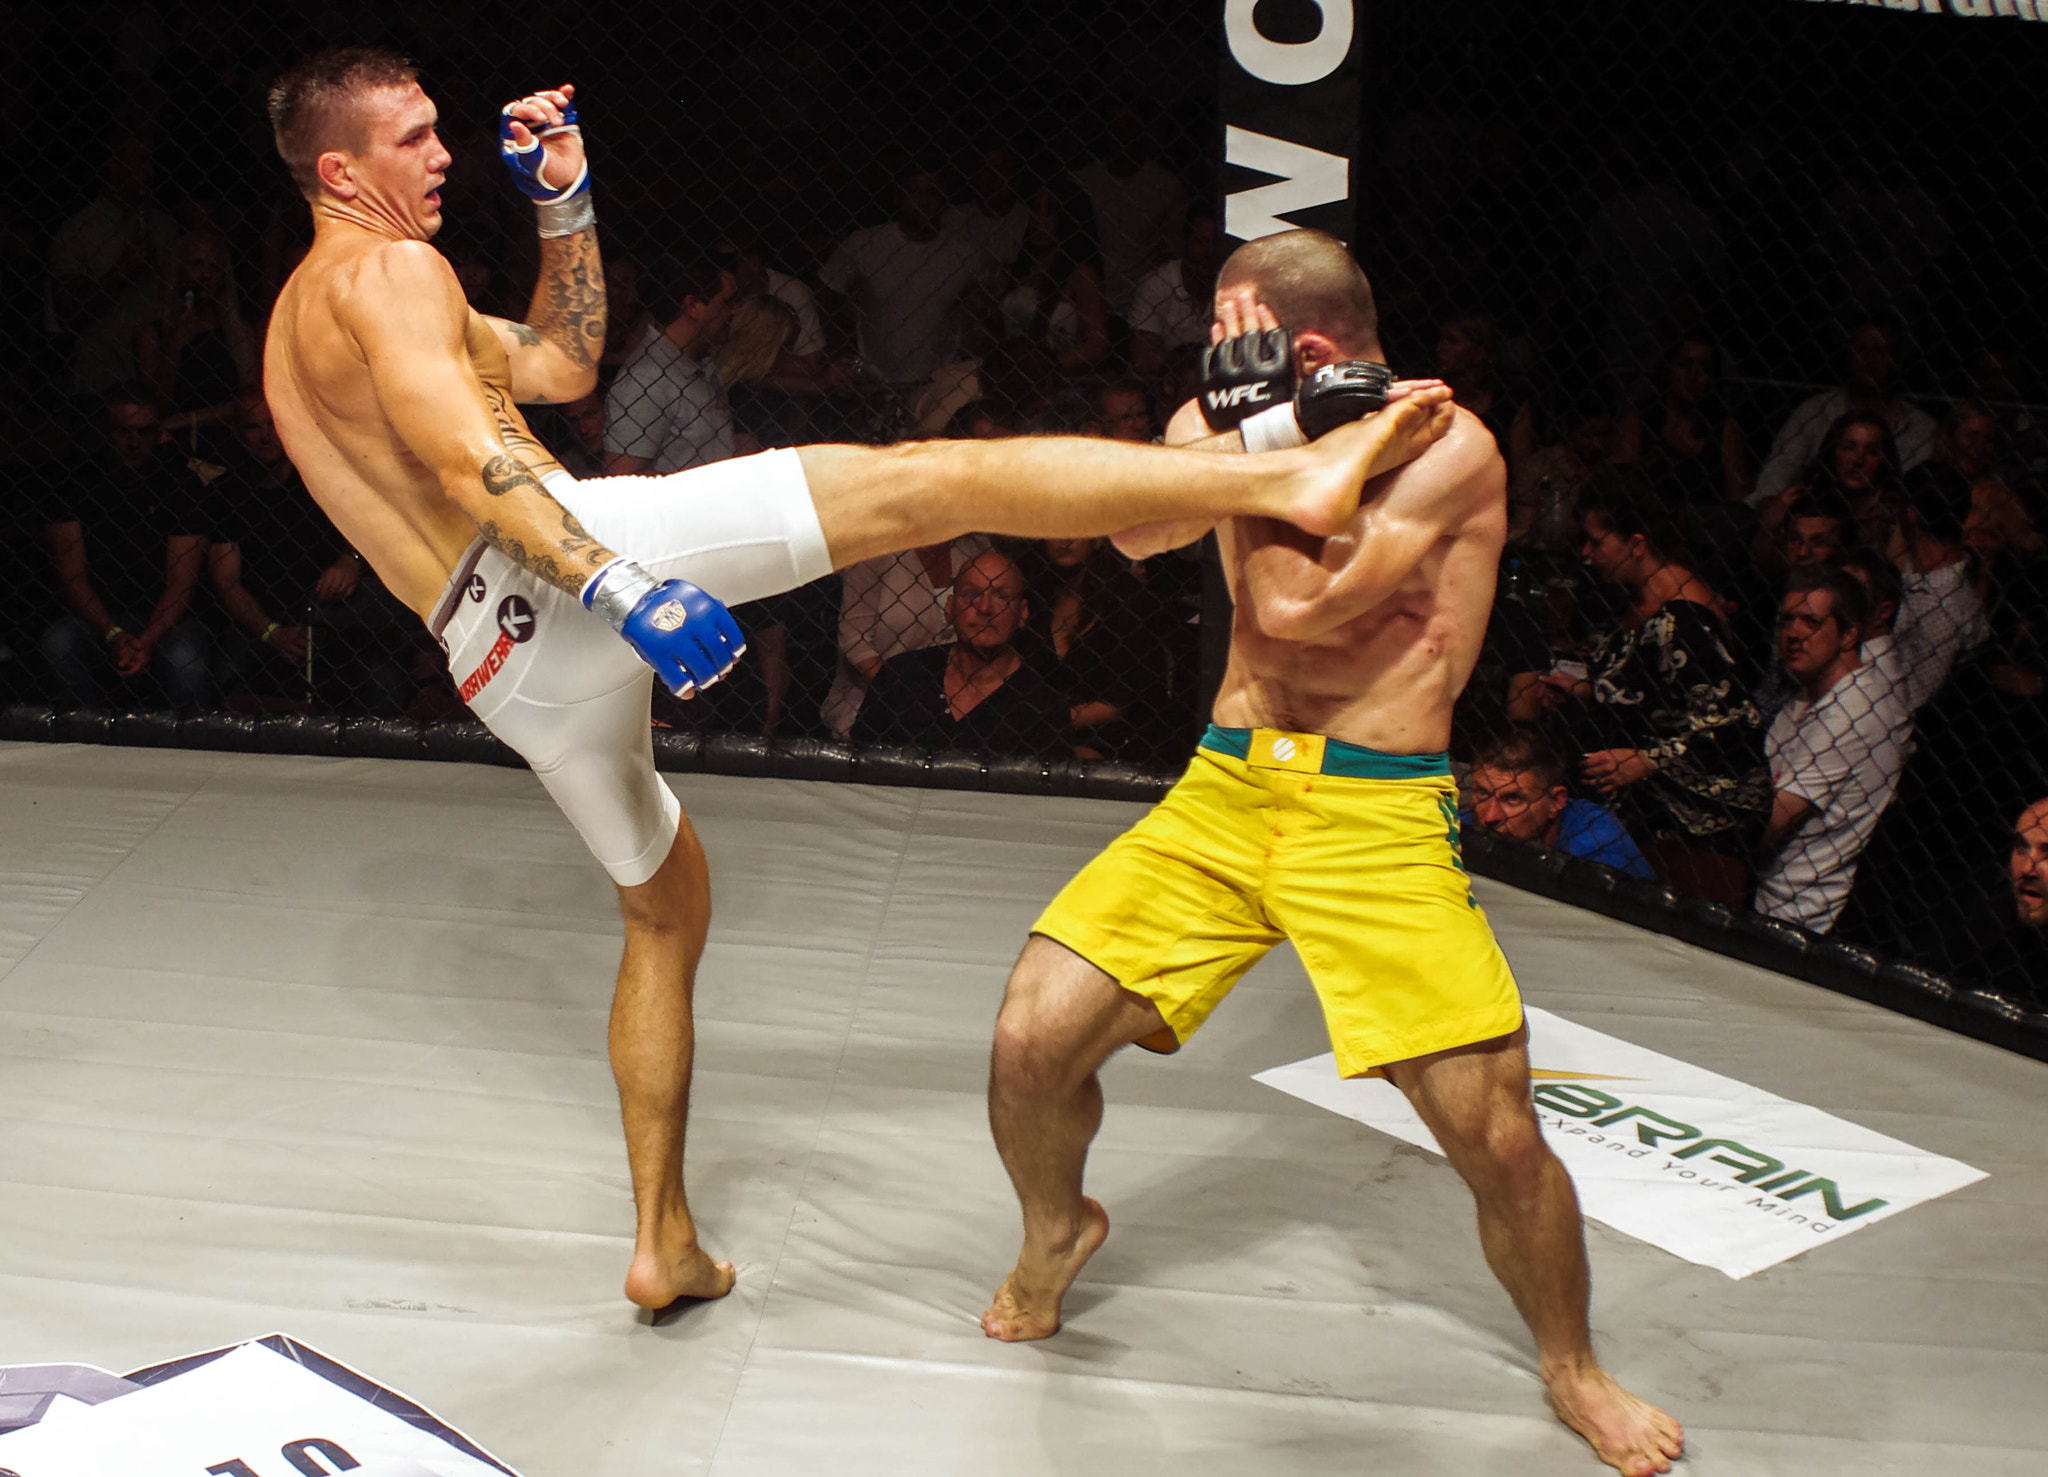 Photograph MMA by Lee Ashman on 500px